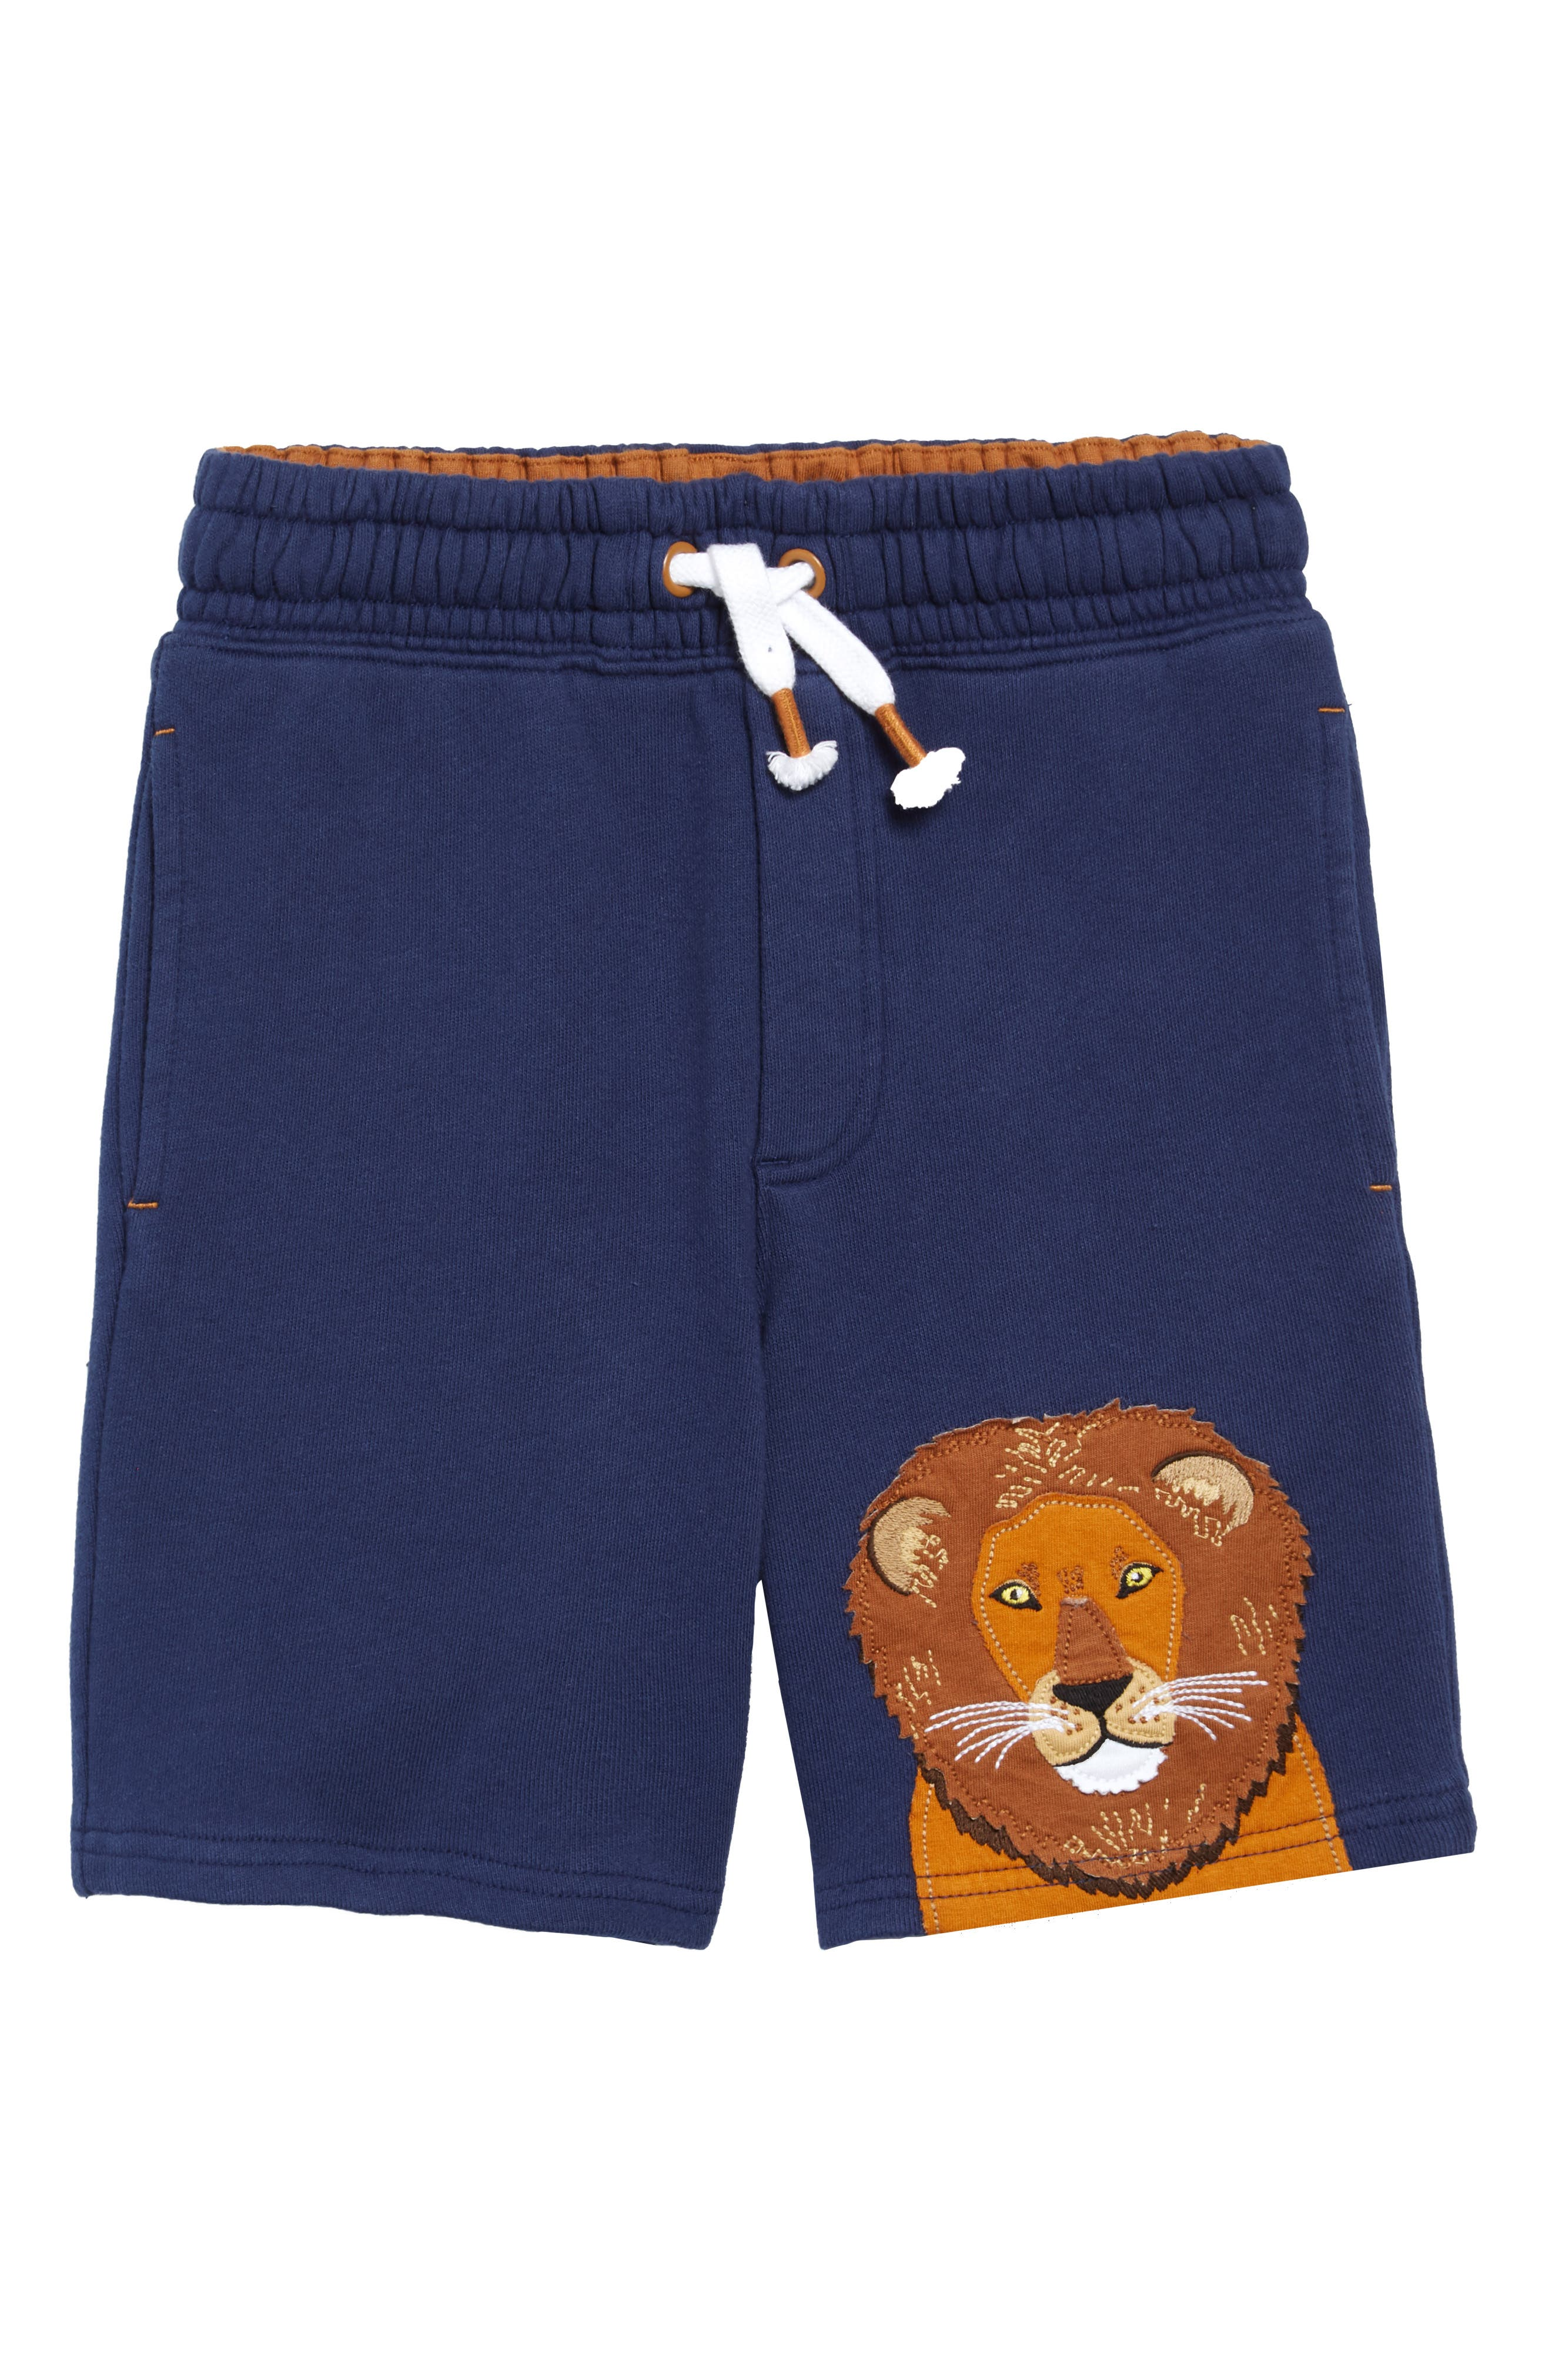 A colorful applique brightens a pair of comfy, all-activity shorts made from soft cotton fleece. Style Name: Mini Boden Applique Sweat Shorts (Toddler, Little Boy & Big Boy). Style Number: 6039384. Available in stores.